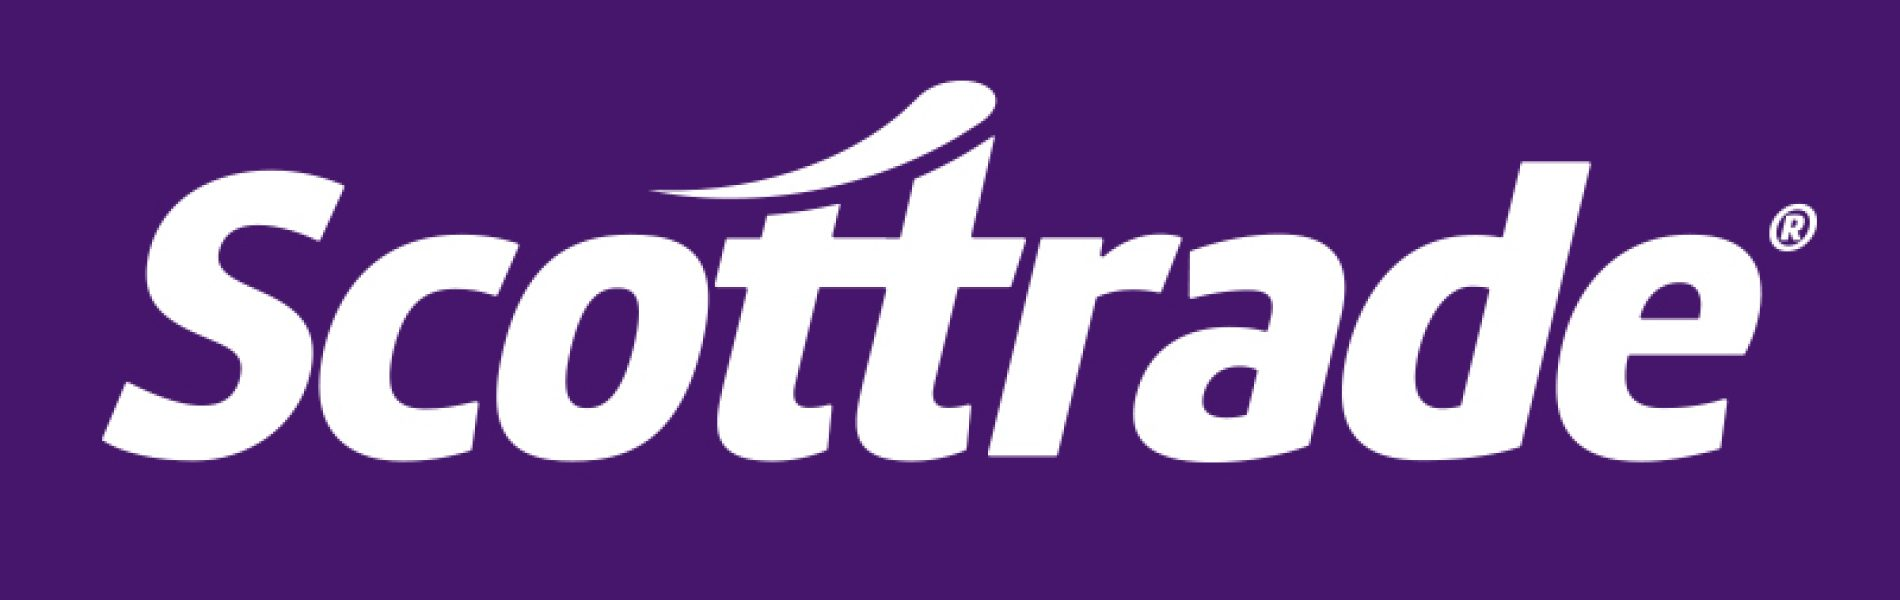 Another Day, One More Database Hacks: Scottrade